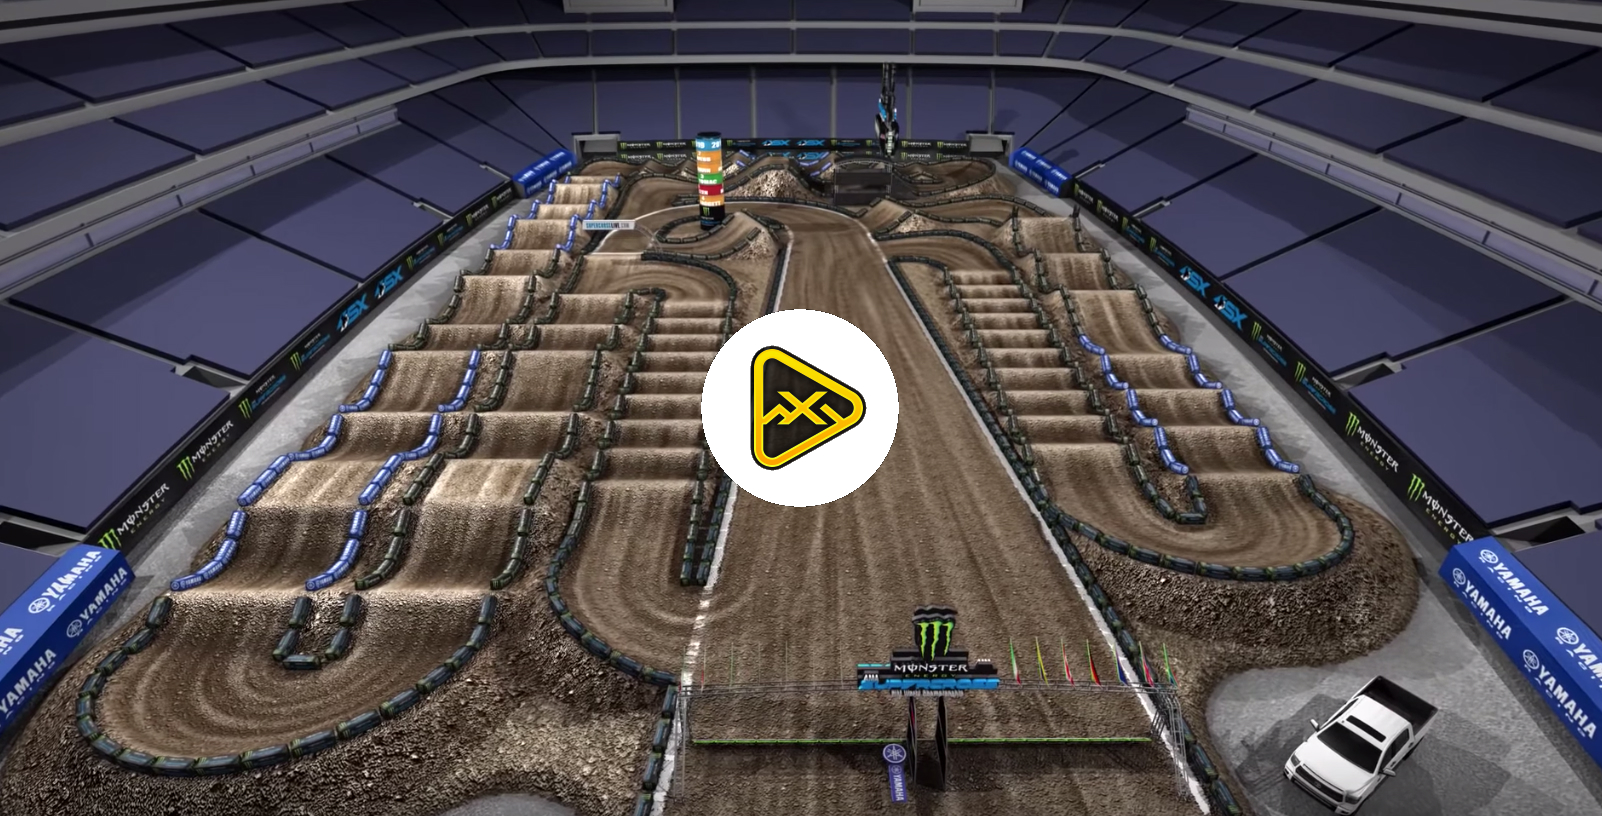 2019 East Rutherford SX Animated Track Map